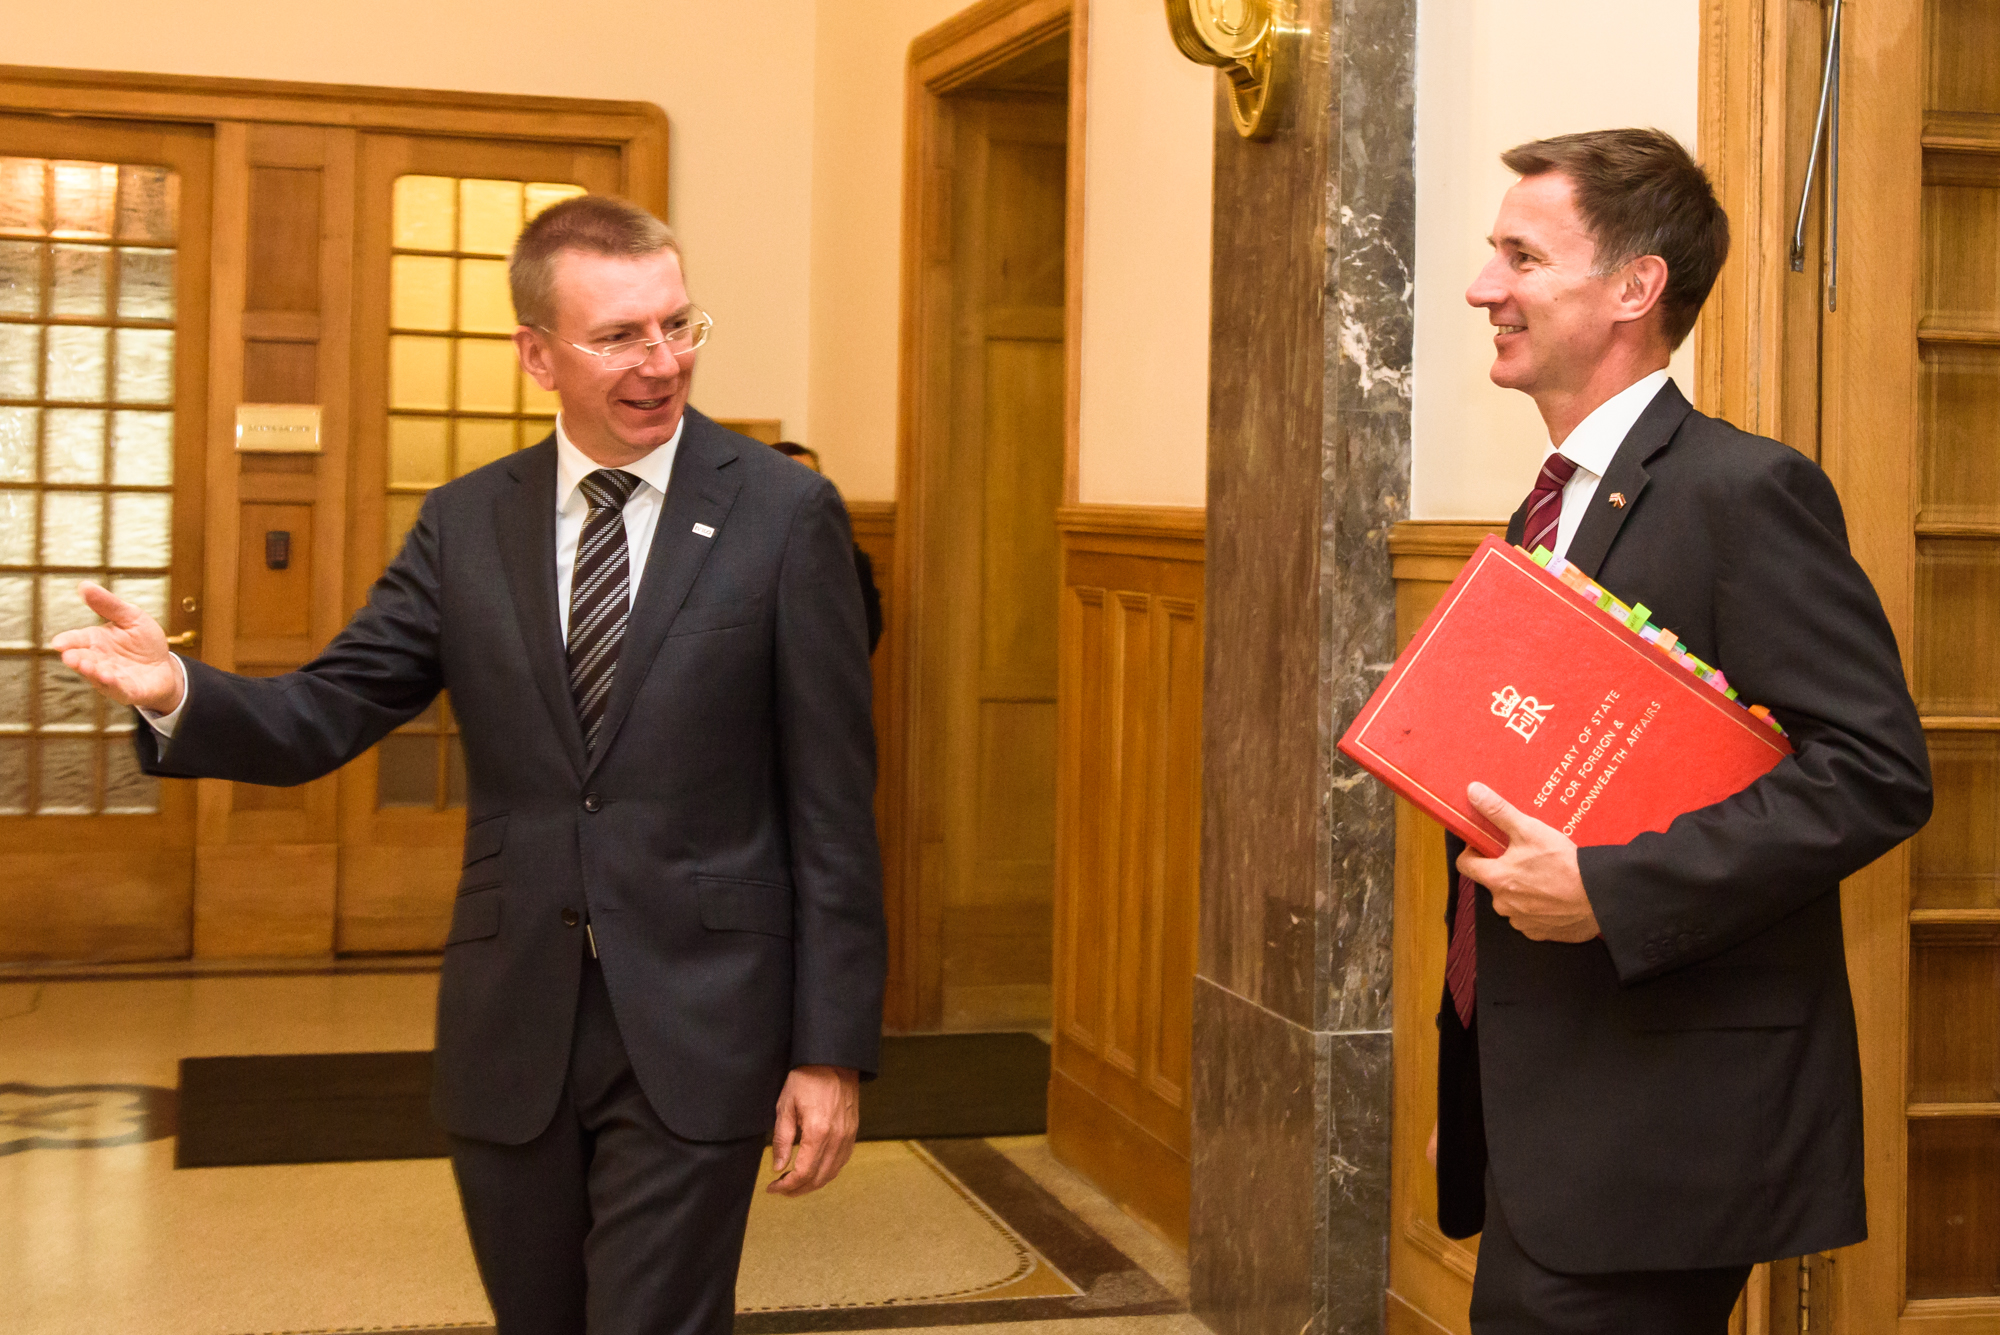 15.08.2018. RIGA, LATVIA. Jeremy Hunt, Minister of Foreign Affairs of United Kingdom arrives to Official State Visit  with Edgars Rinkevics, Minister of Foreign Affairs of Latvia. Ministry of Foreign Affairs of Republic of Latvia.